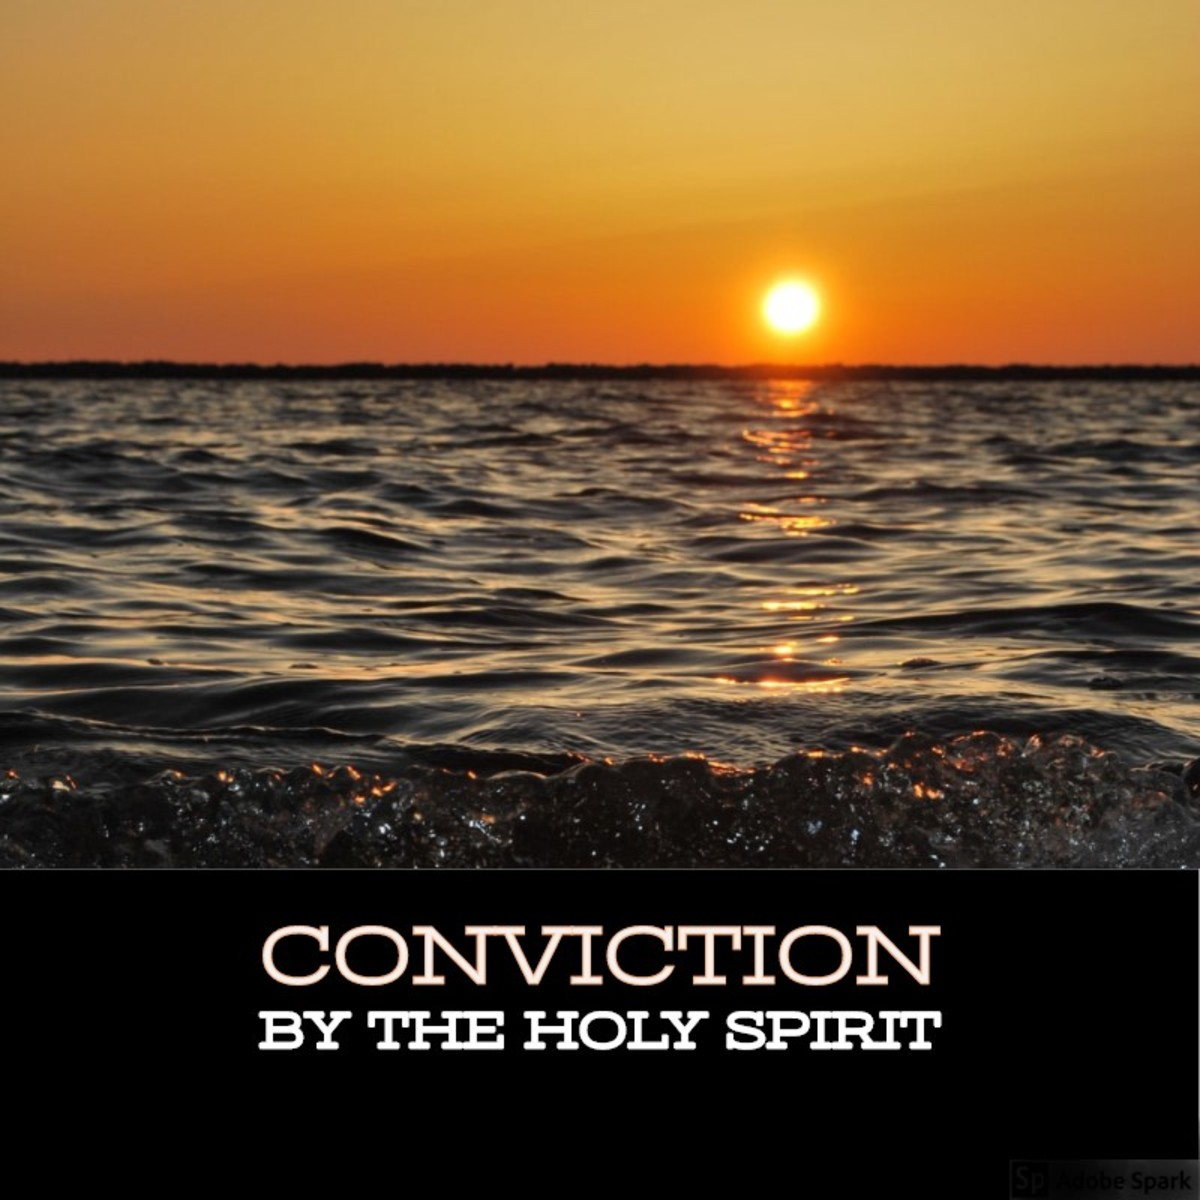 Conviction by the Holy Spirit.